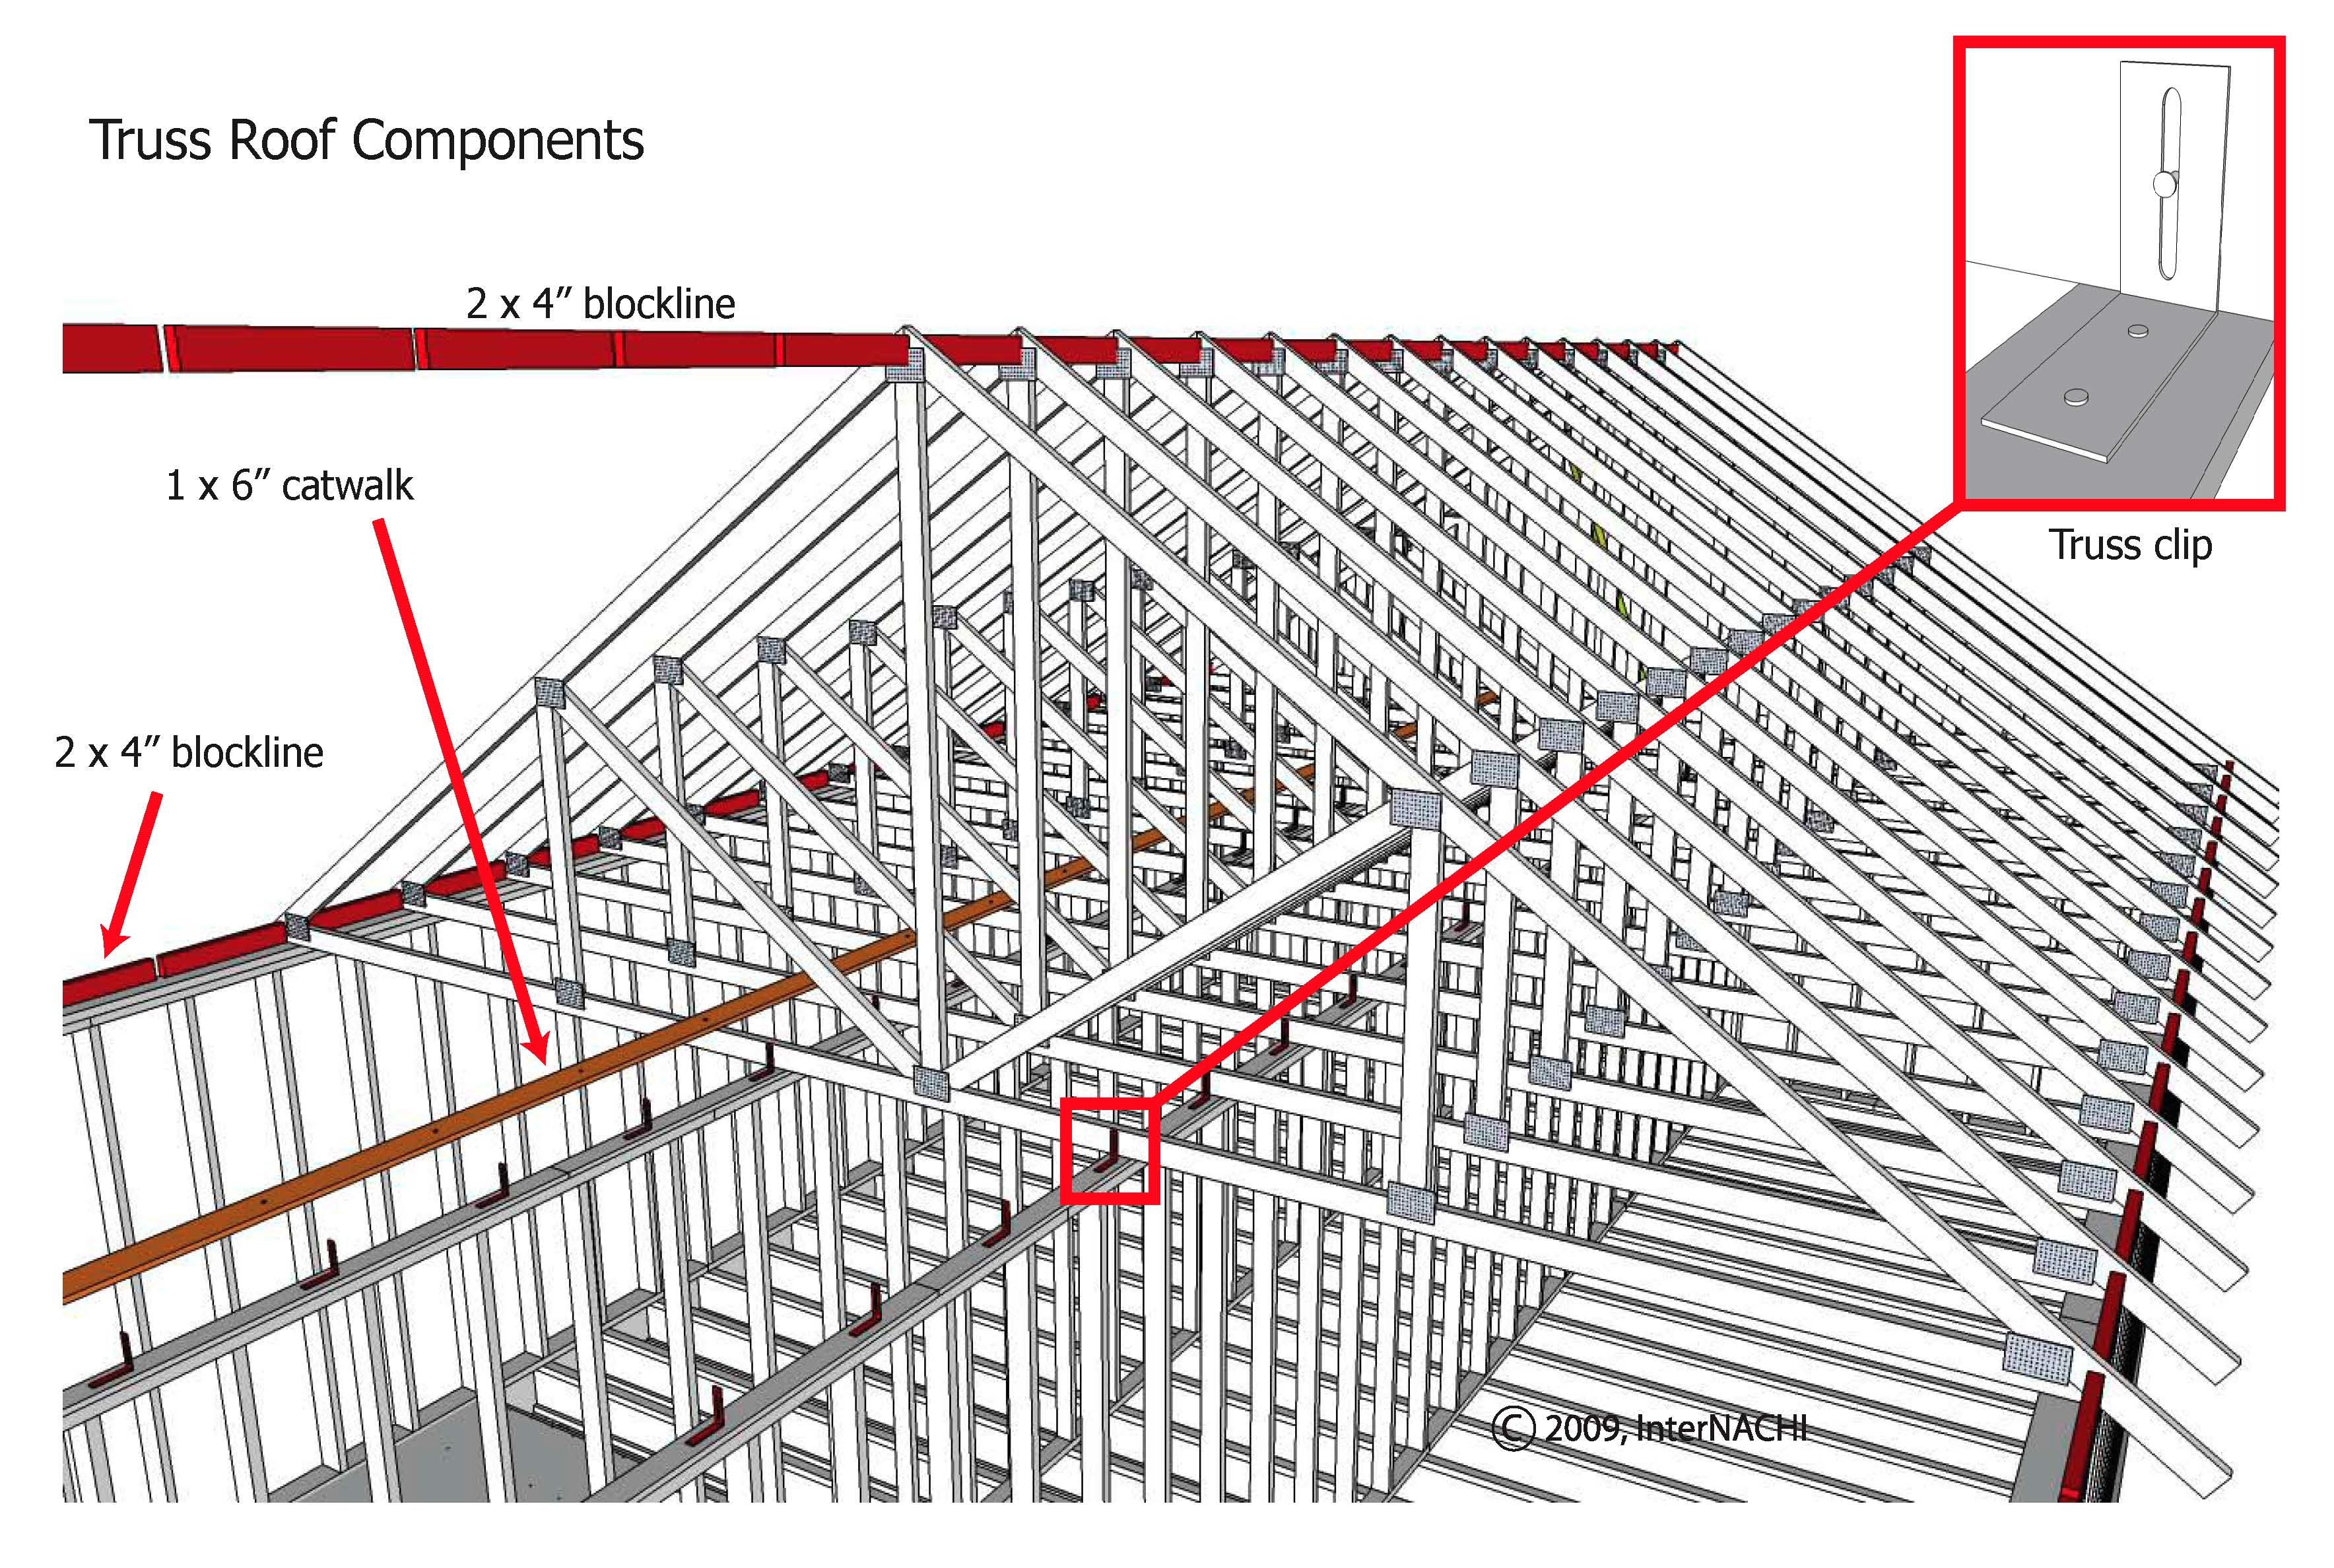 Truss roof components.